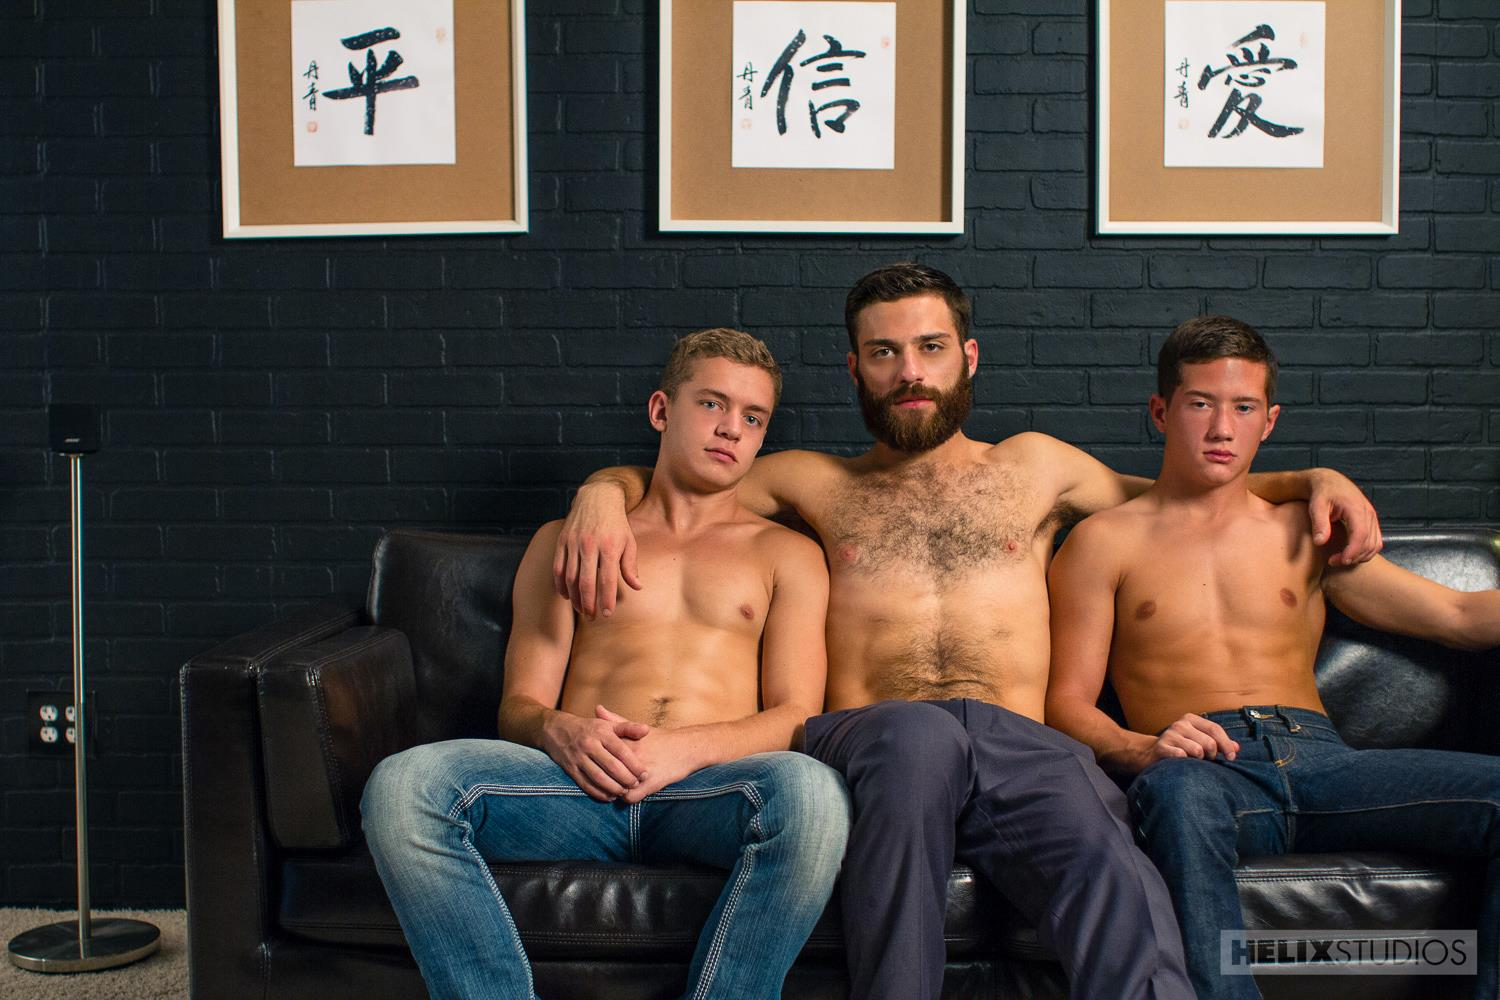 gay intergenerational sex Click here to download this full length twink threesome sex video and hundreds more amateur gay porn videos at Helix Studios.